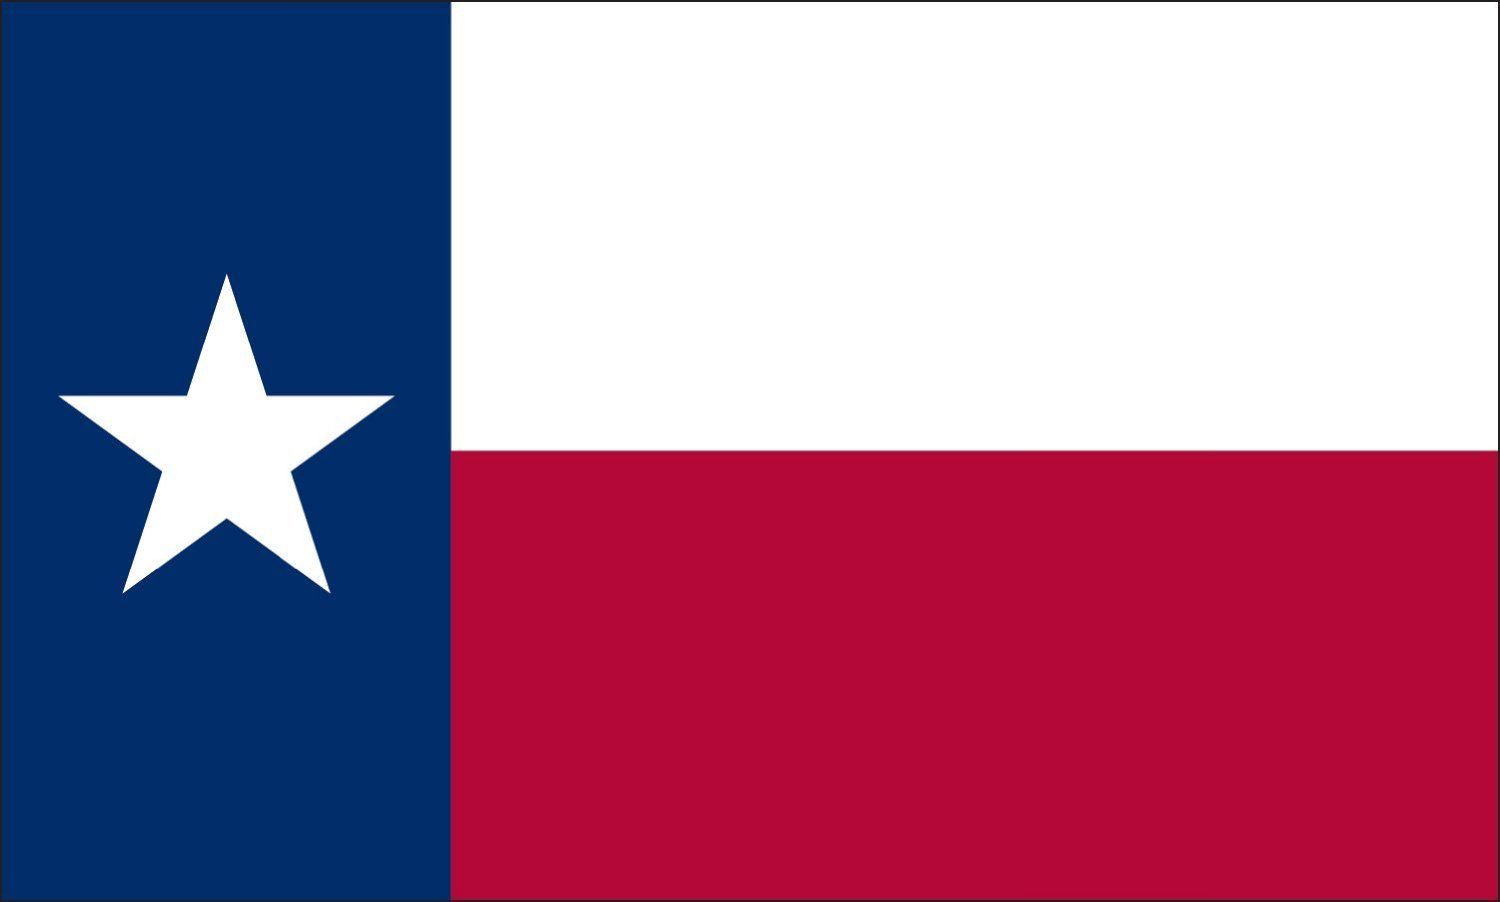 Texas State Flag Coloring Pages | School Ideas | Pinterest